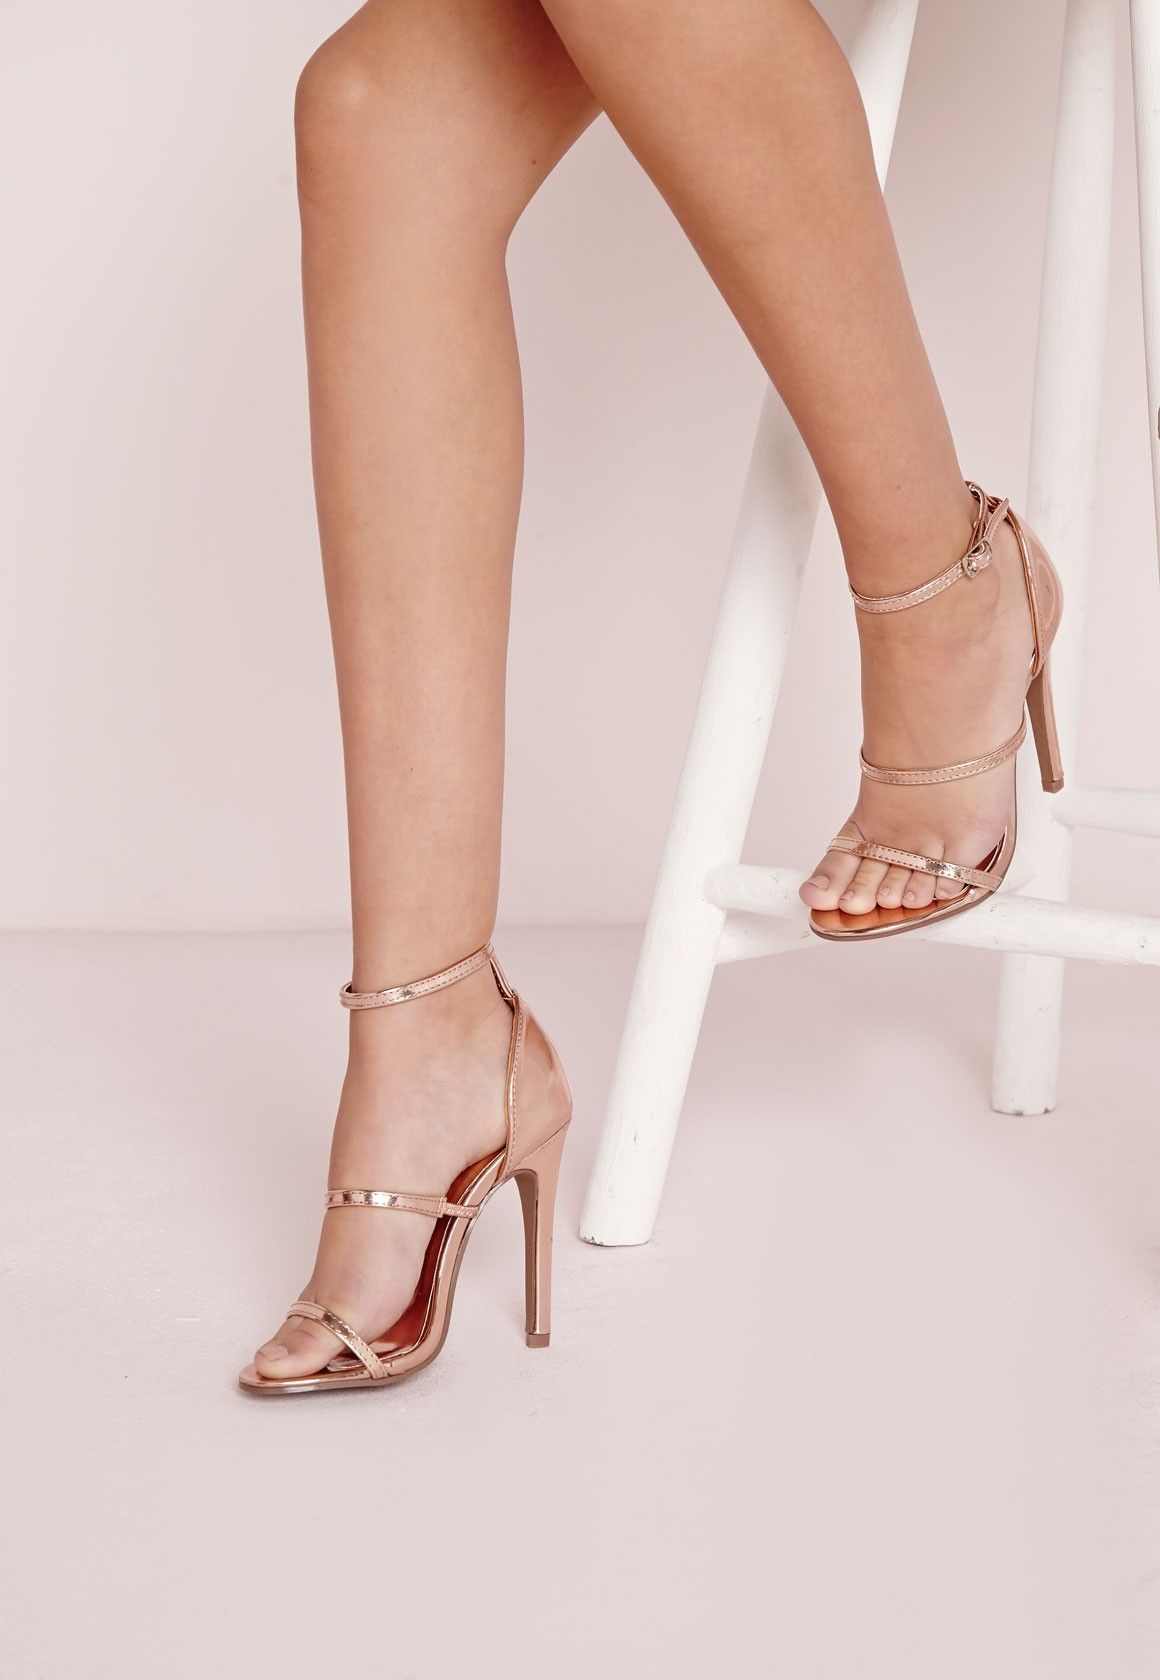 8cae23b4ec7d Missguided - Three Strap Barely There Heeled Sandals Rose Gold ...